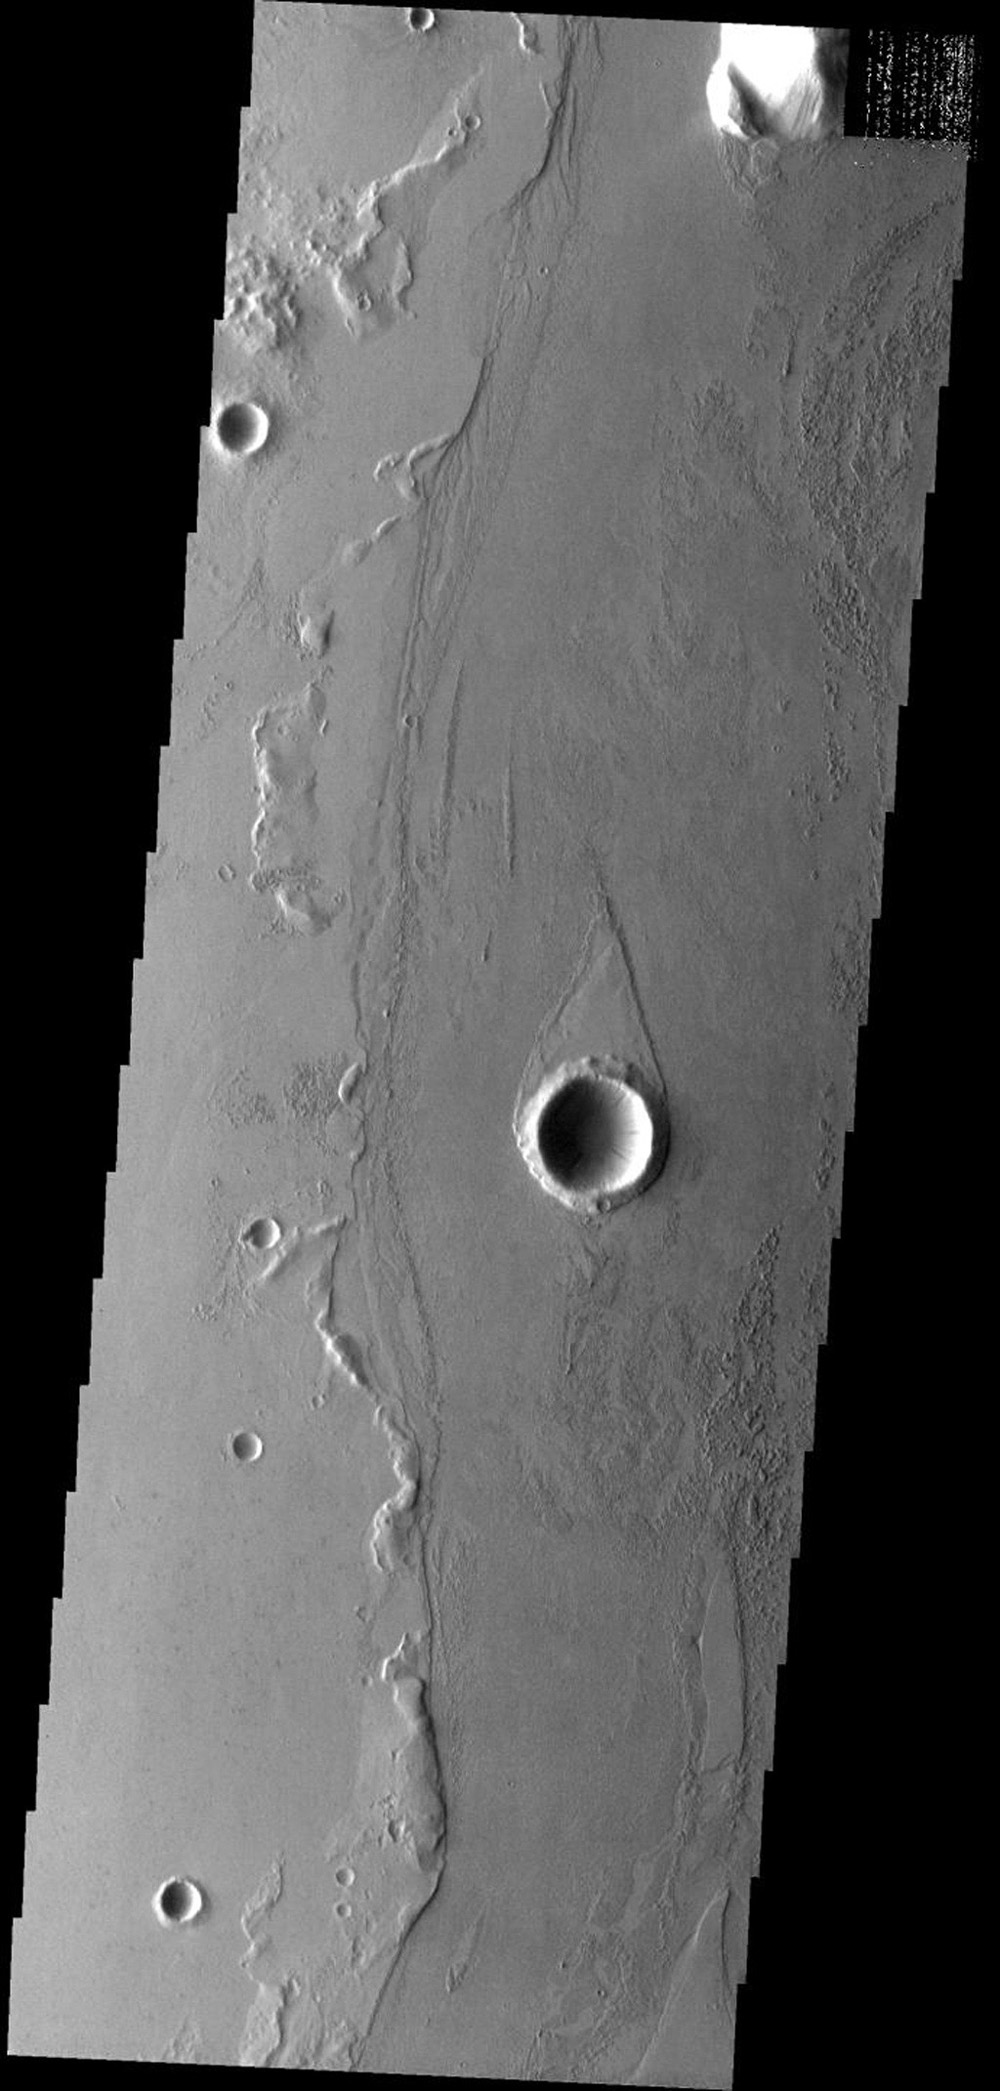 The teardrop-shaped 'island' in this image was formed by the flow of fluid lava rather than liquid water on Mars as seen by NASA's Mars Odyssey spacecraft.